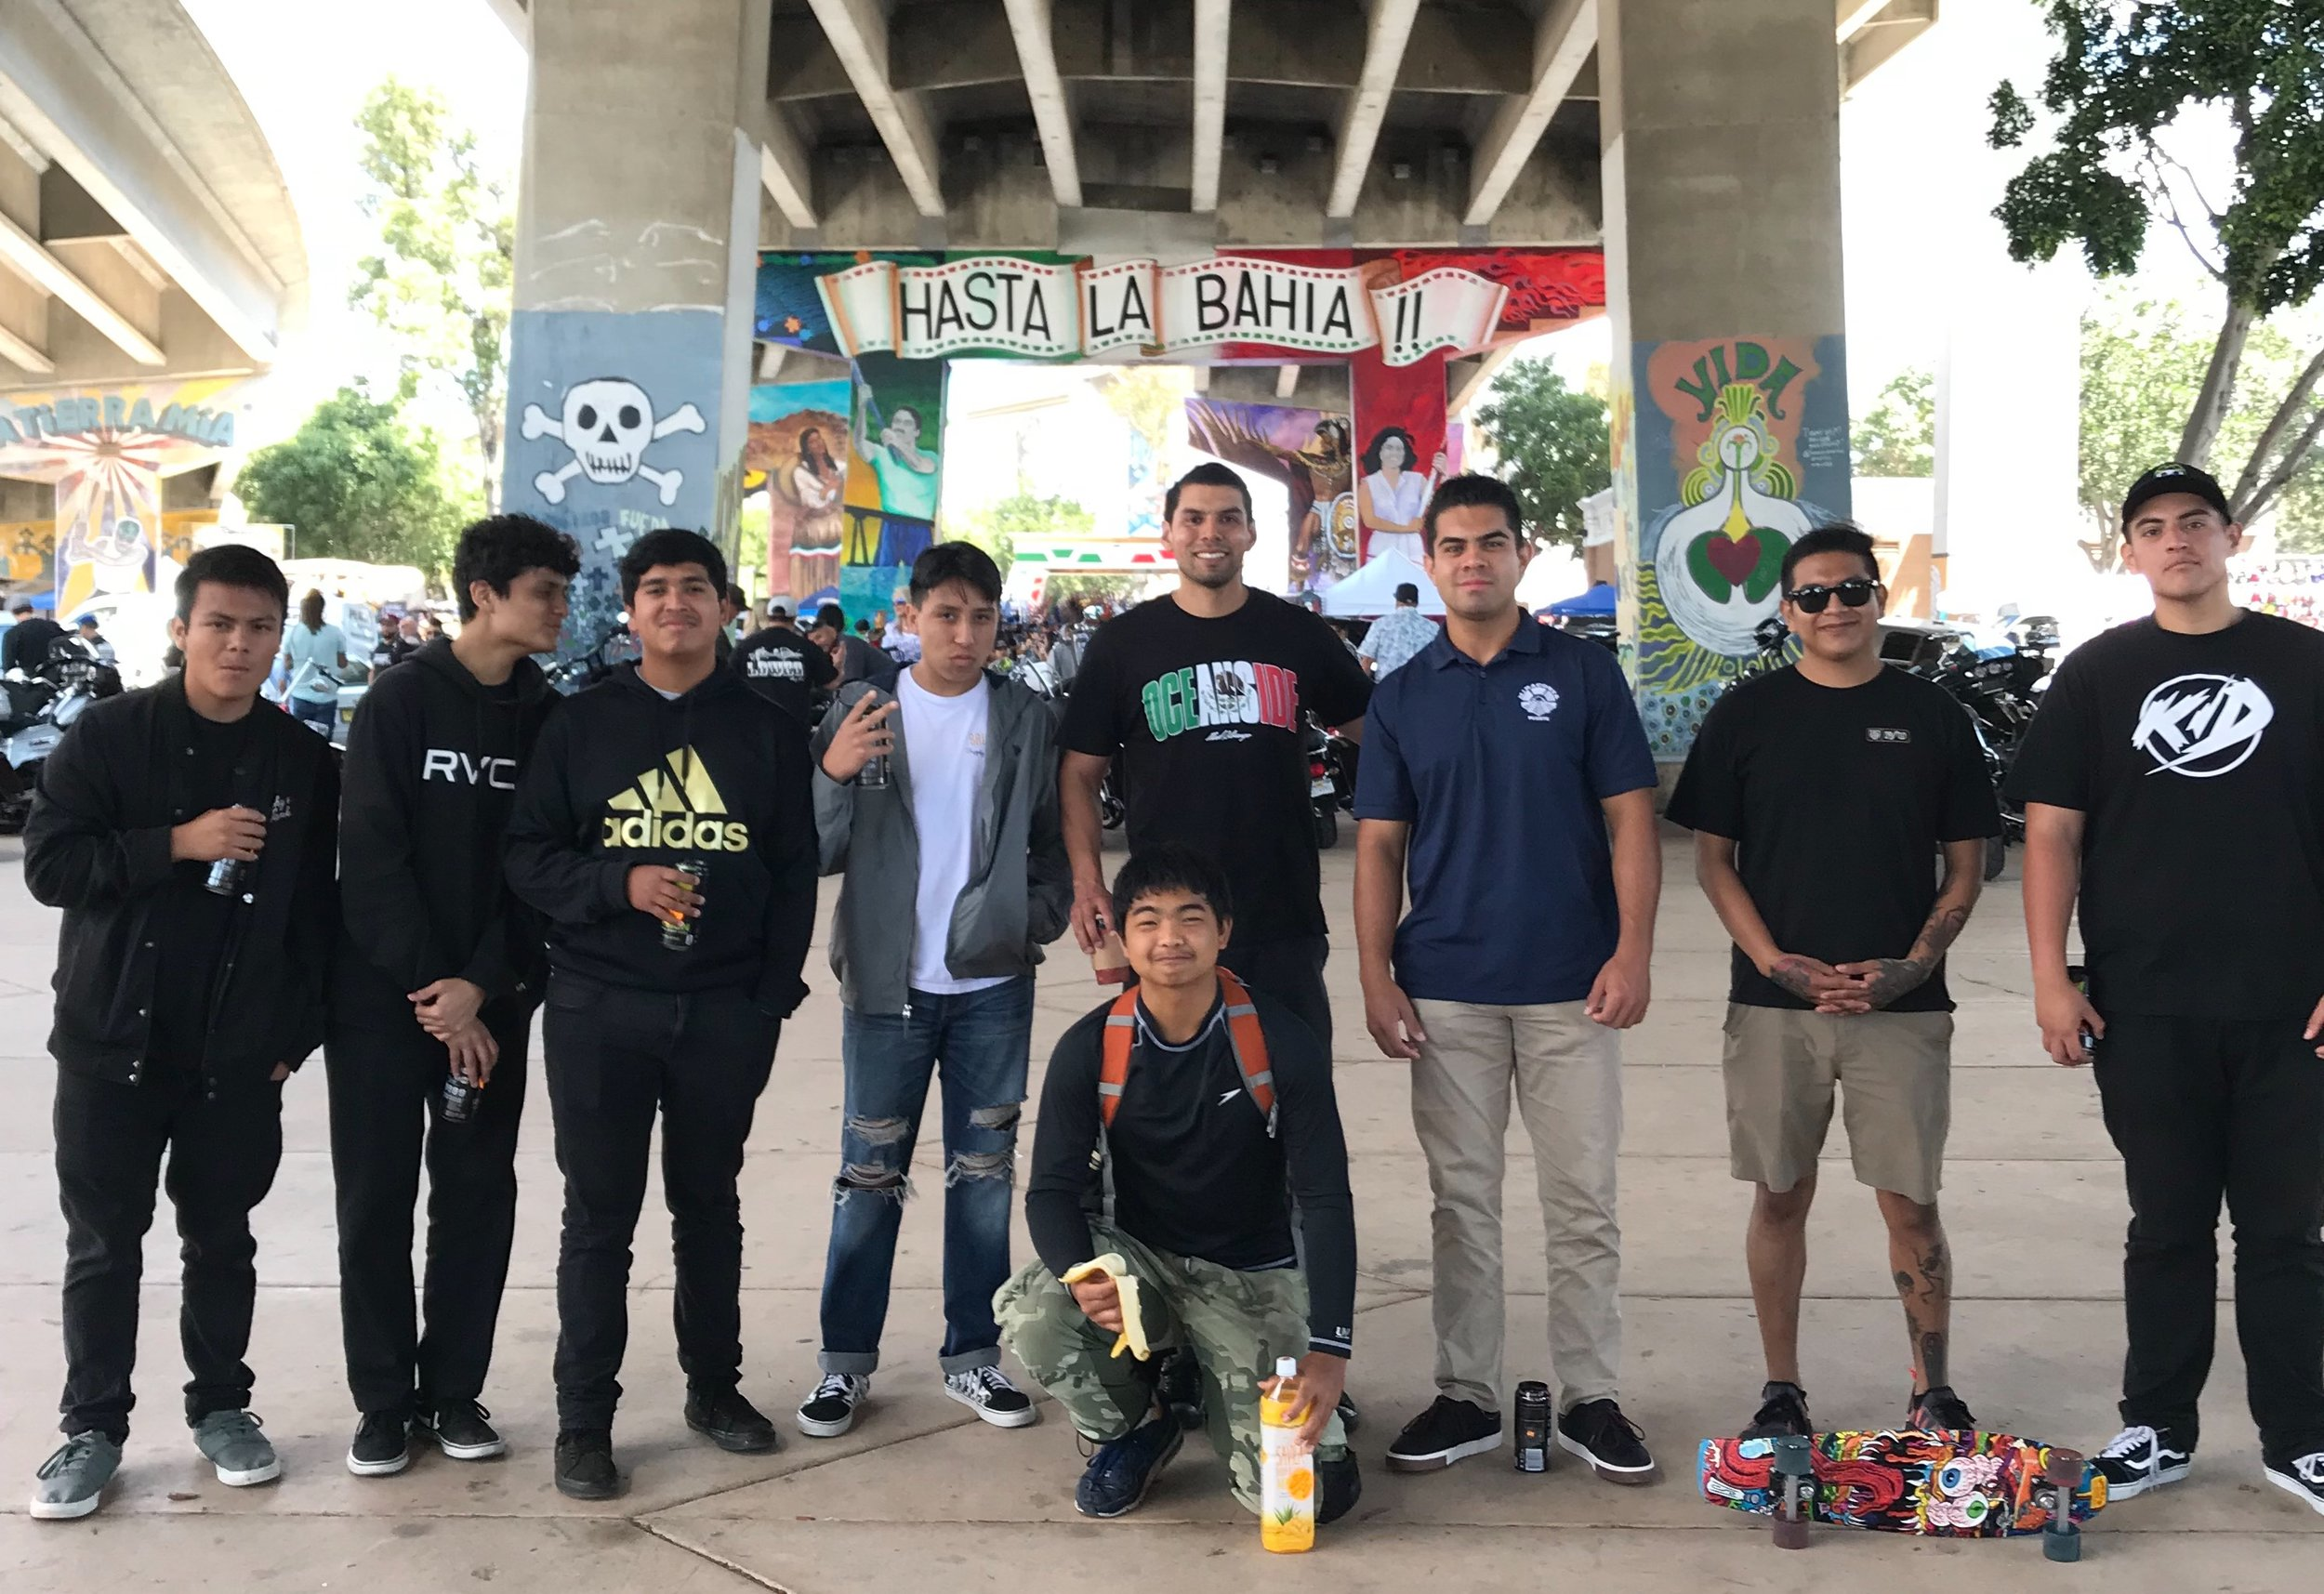 Latino Young Men Success Pilot mentors and mentees took a trip to Barrio Logan for the 49th Annual Chicano Park Celebration THANKS TO SUPPORT FROM GENENTECH'S VIDA EMPLOYEE GROUP.